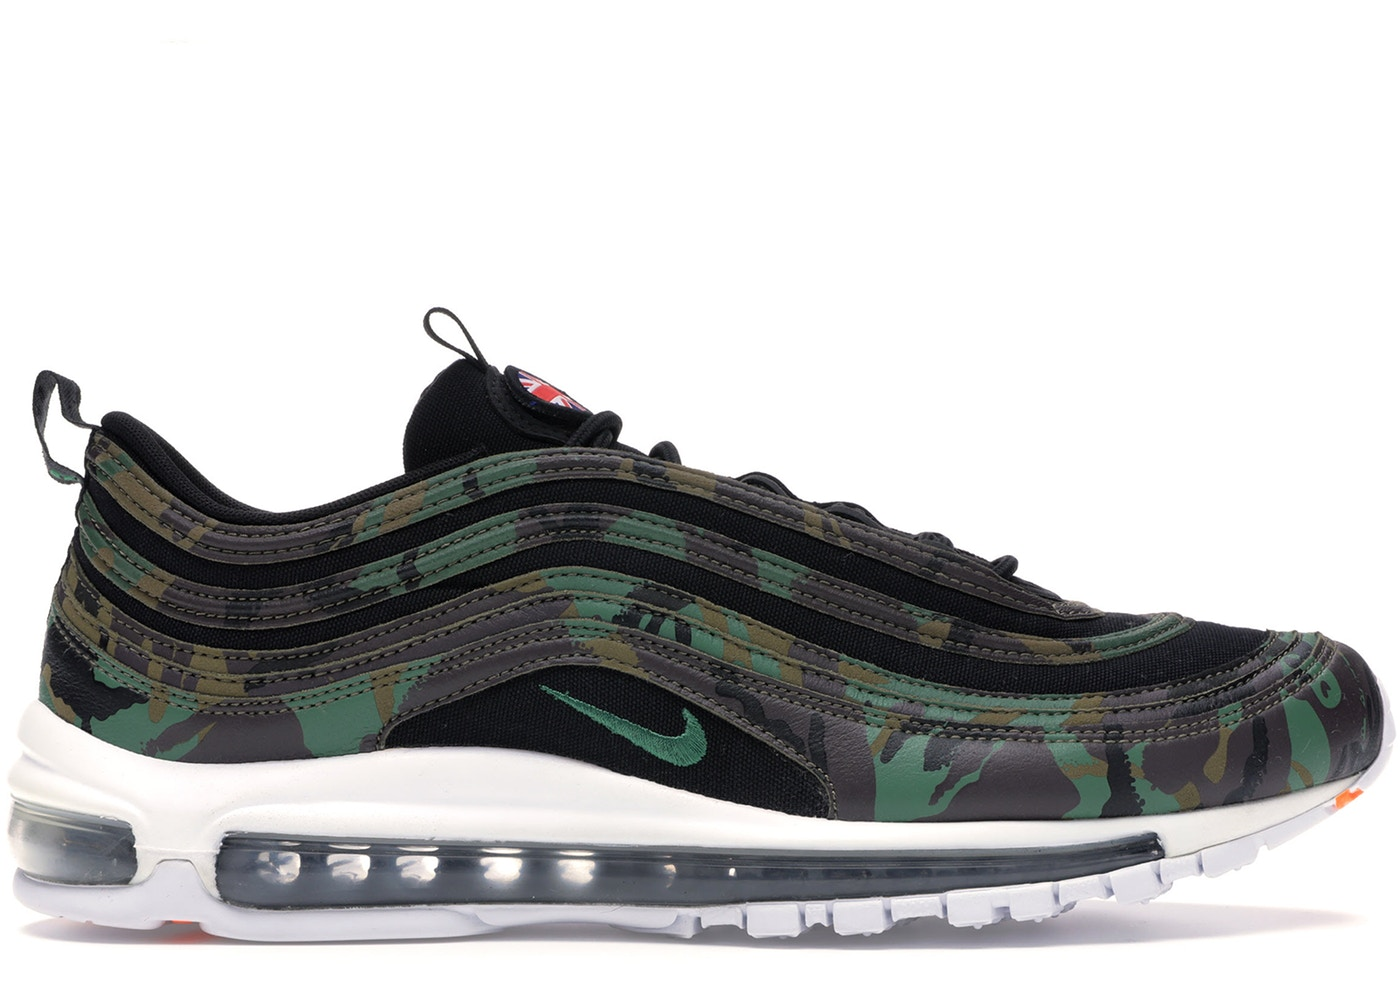 ナイキ メンズ エアマックス97 Nike Air Max 97 Country Camo UK スニーカー RAW UMBER/FORTRESS GREEN-BLACK EARTH